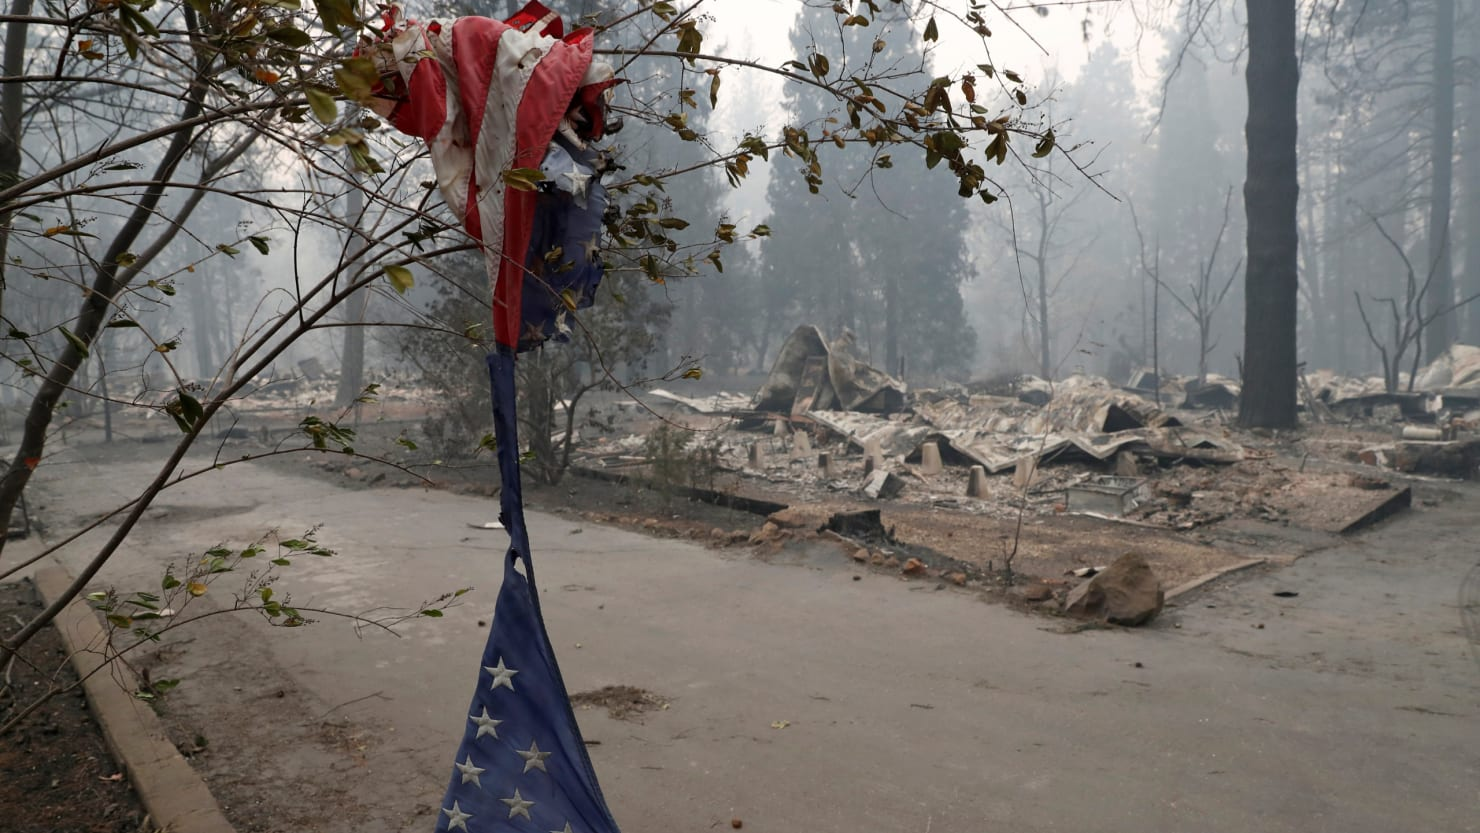 More than 1,000 missing in CA fires